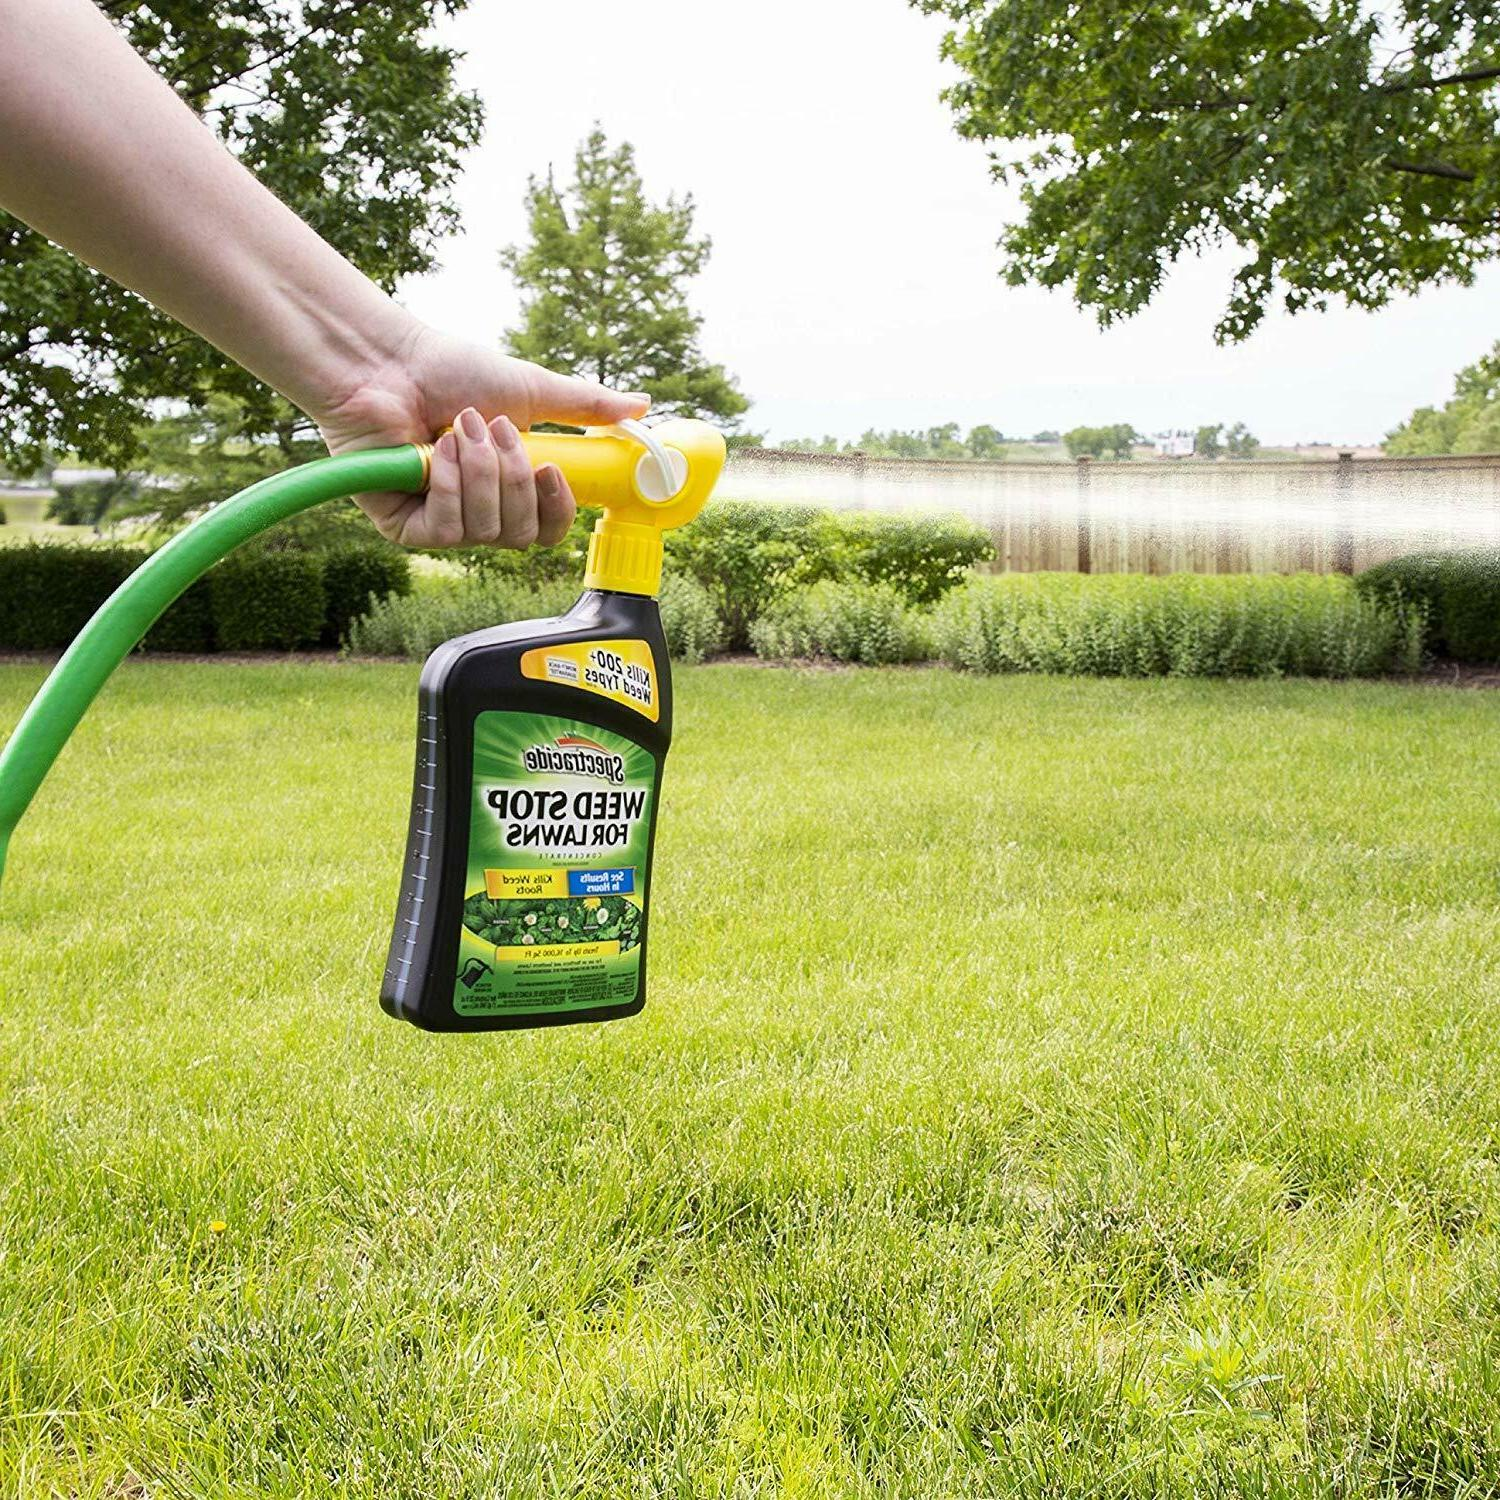 Spectracide Weed Stop Lawns Ready-to-Spray,